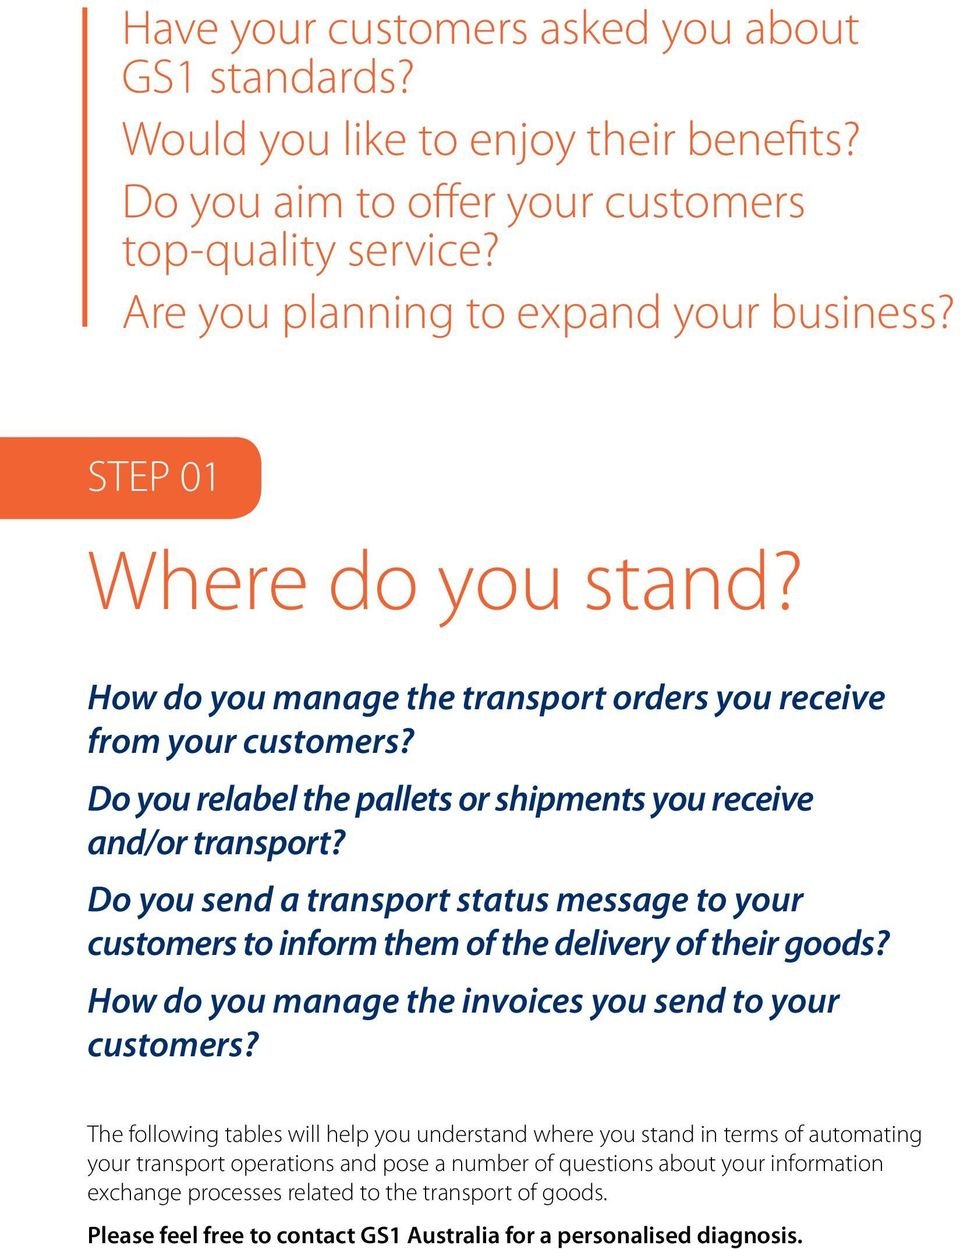 Do you send a transport status message to your customers to inform them of the delivery of their goods? How do you manage the invoices you send to your customers?